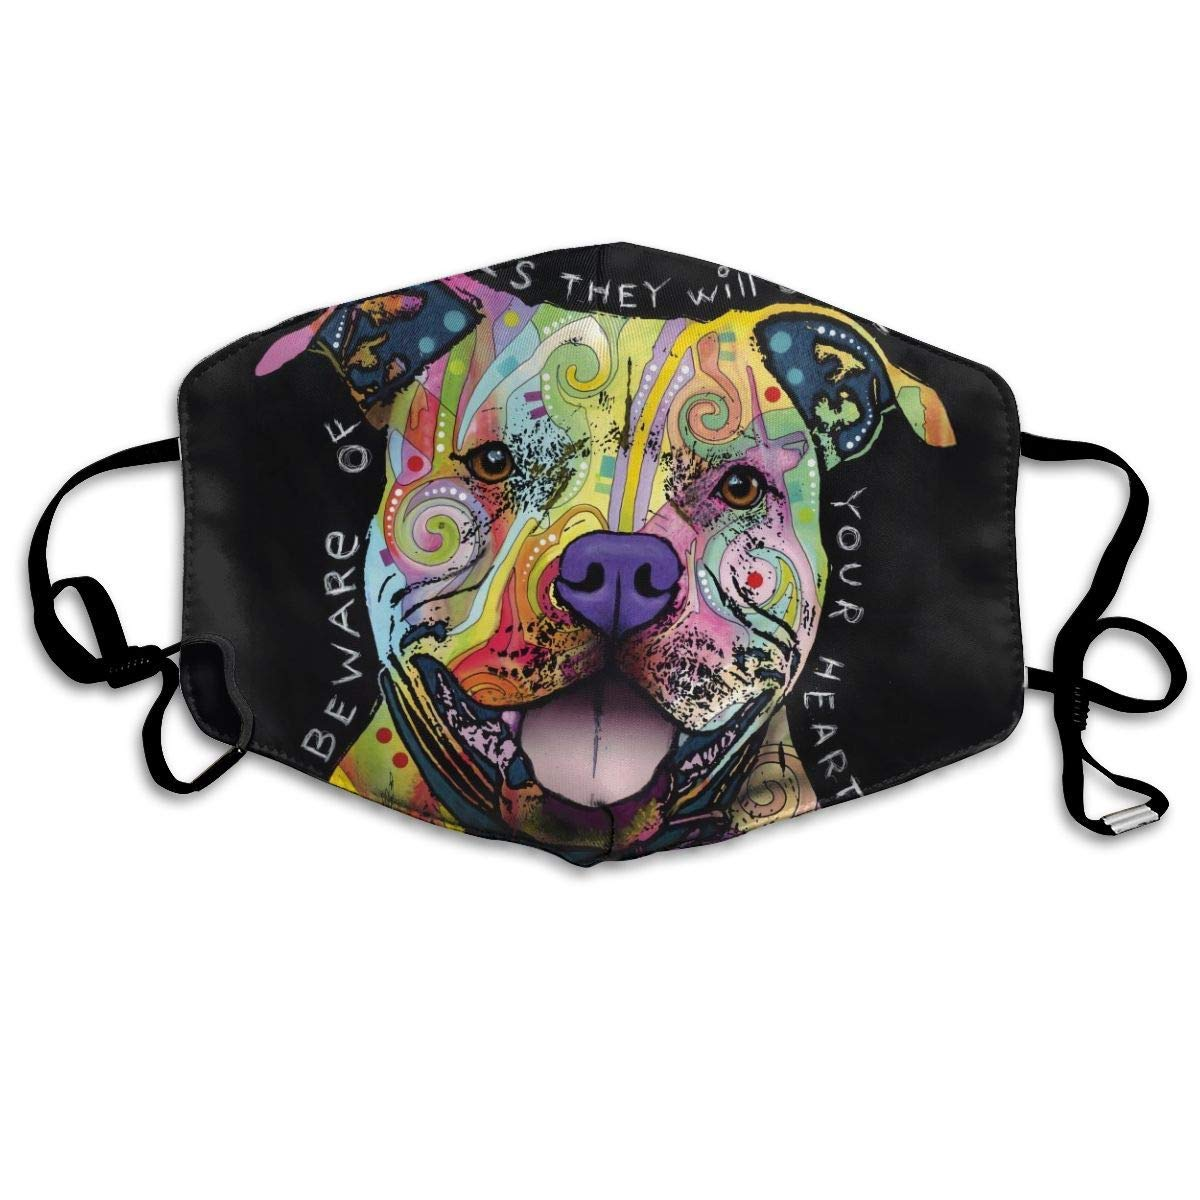 Women Men Teens Washable Reusable Face Masks With Elastic Ear Loop,   Anti Dust Pollution Face Mask (FaceTi Pit Bull Dog)